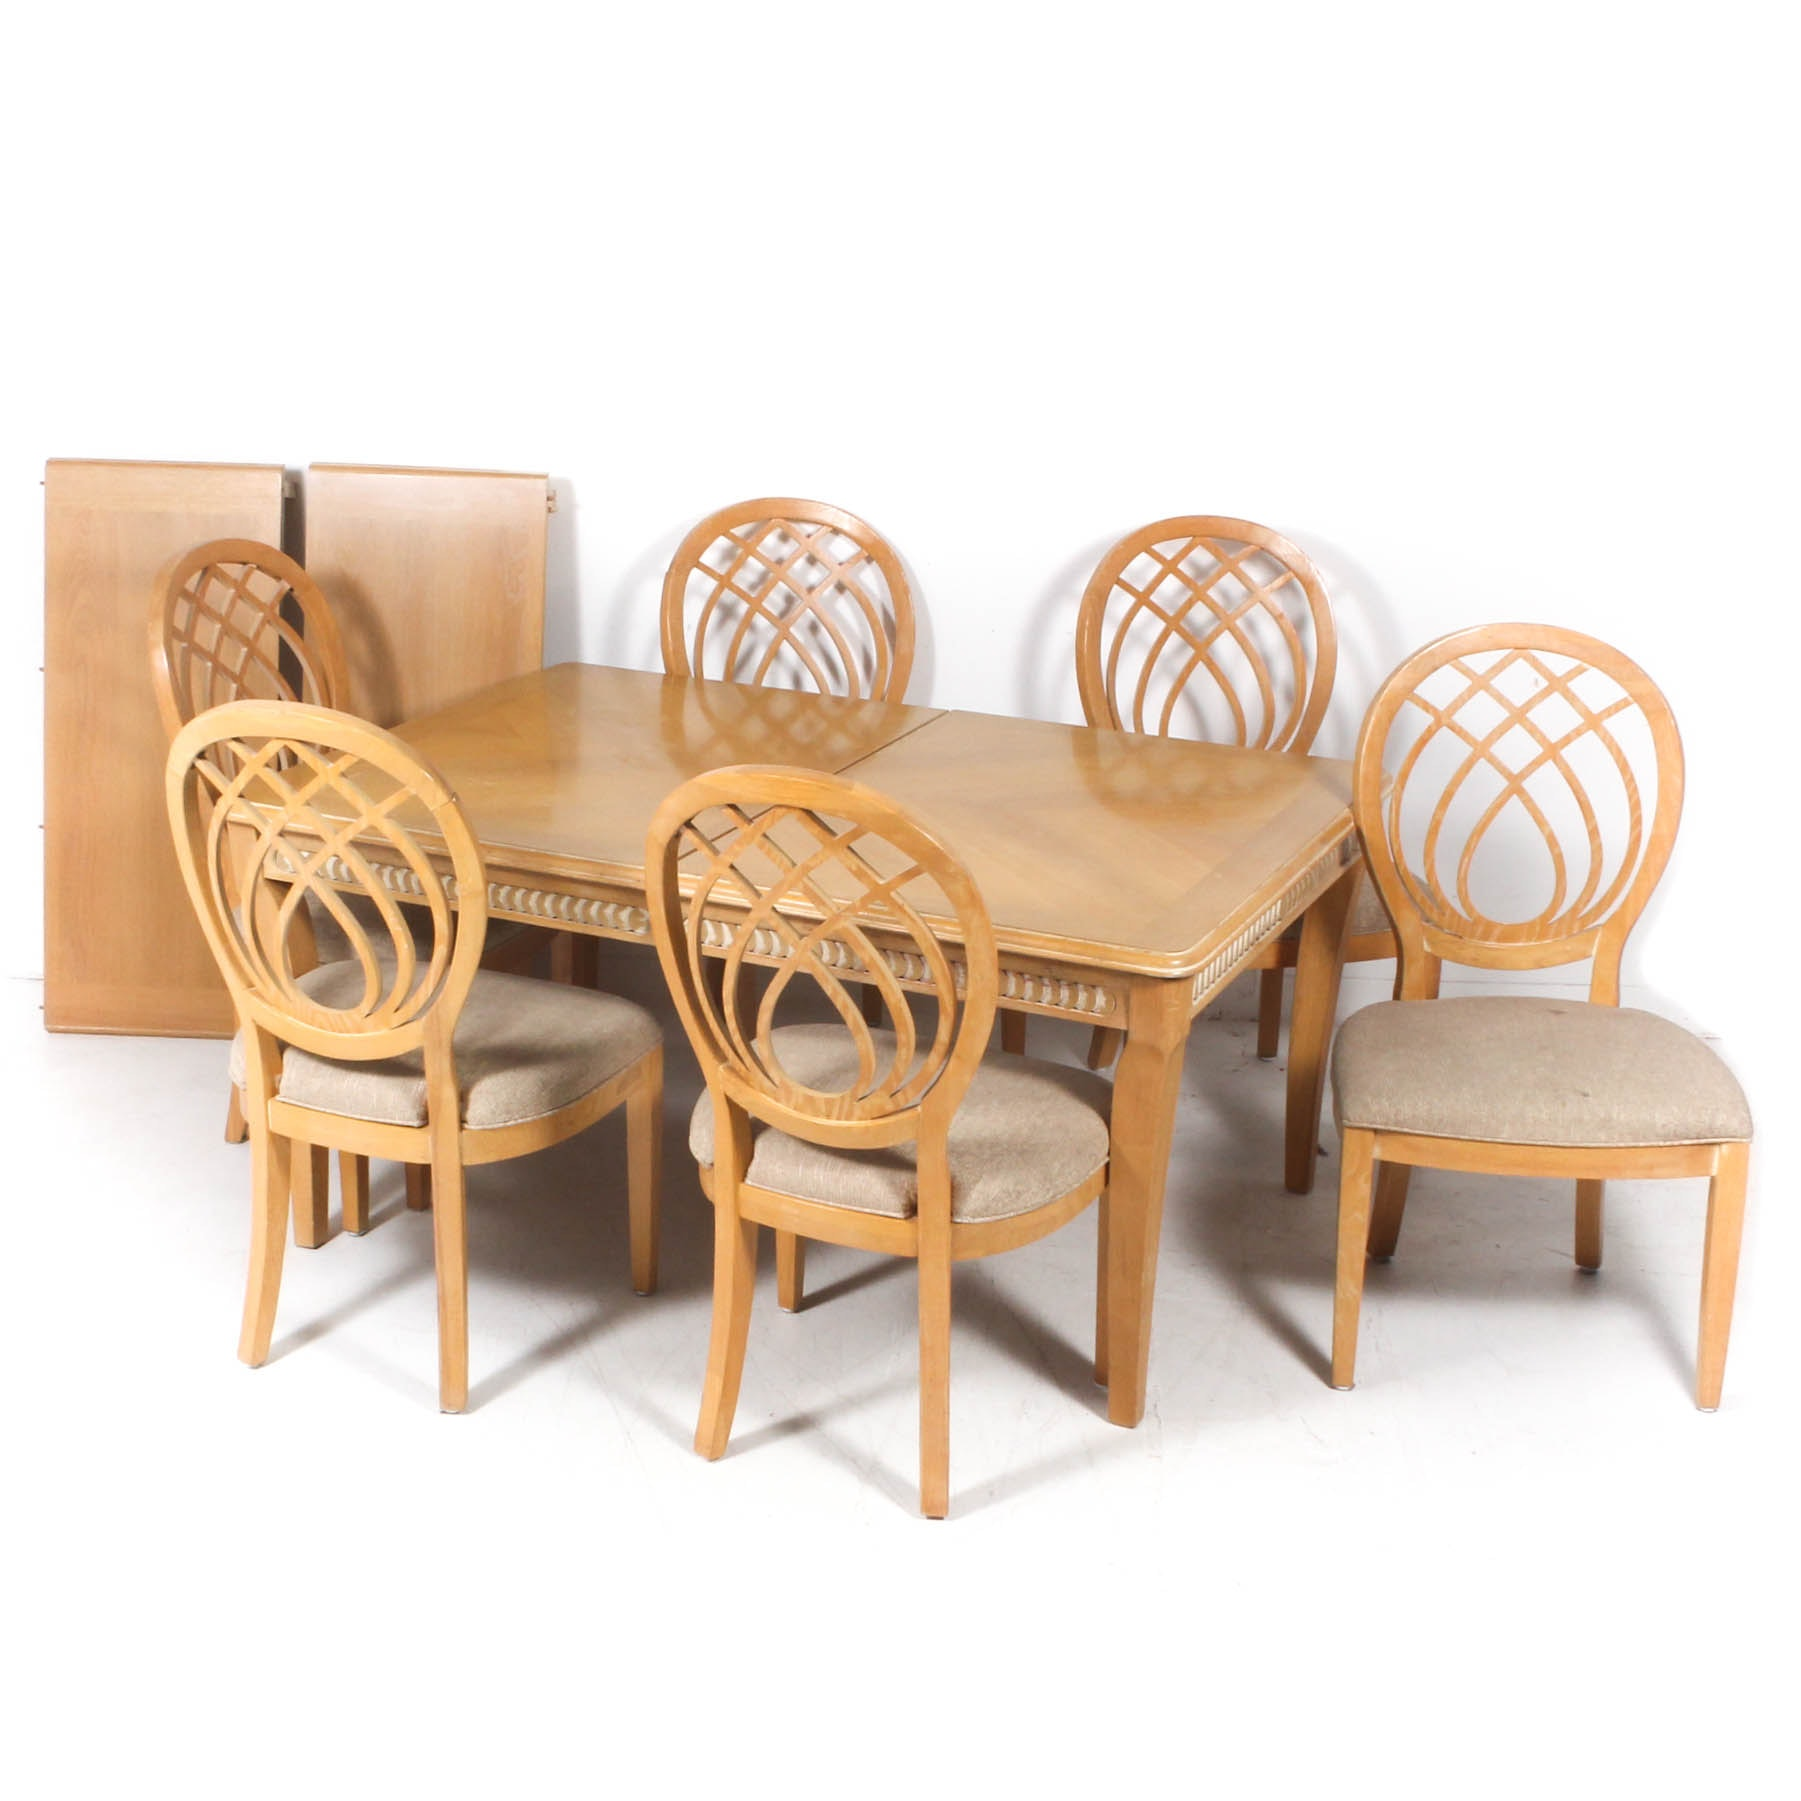 Dining Set Featuring Broyhill Chairs